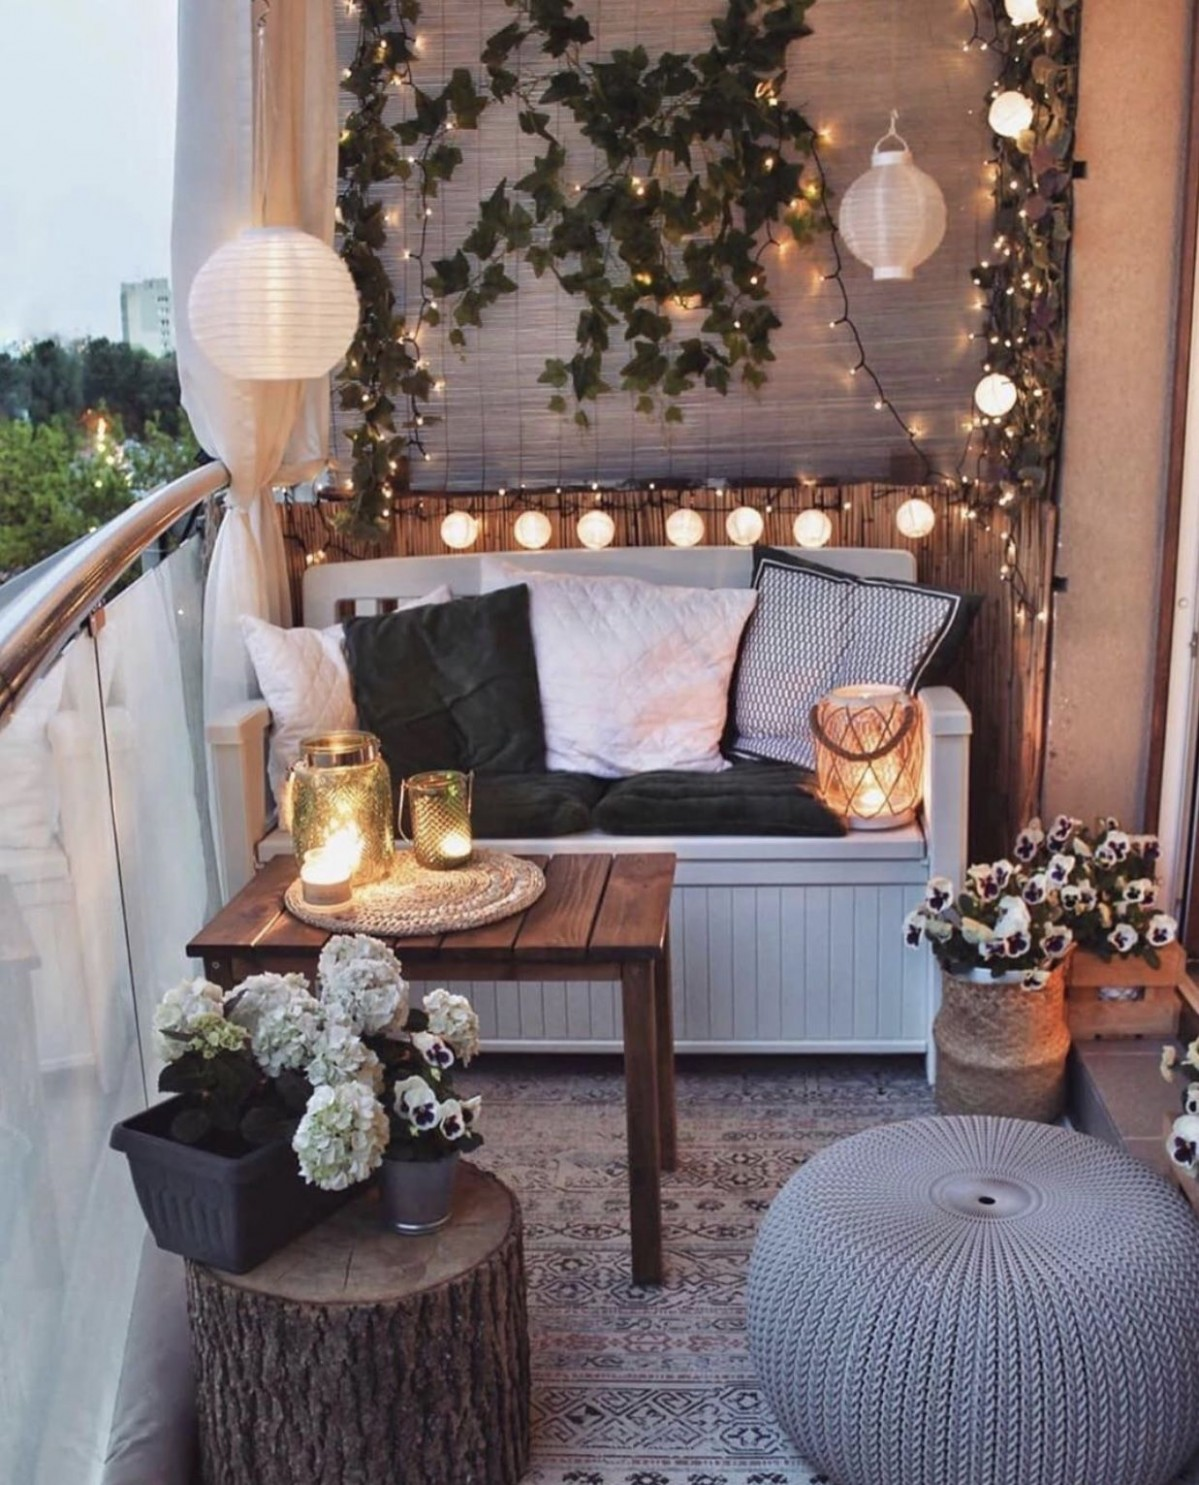 11 Gorgeous Home Decor Ideas You Will Want to Copy  Chaylor  - Apartment Balcony Decorating Ideas You